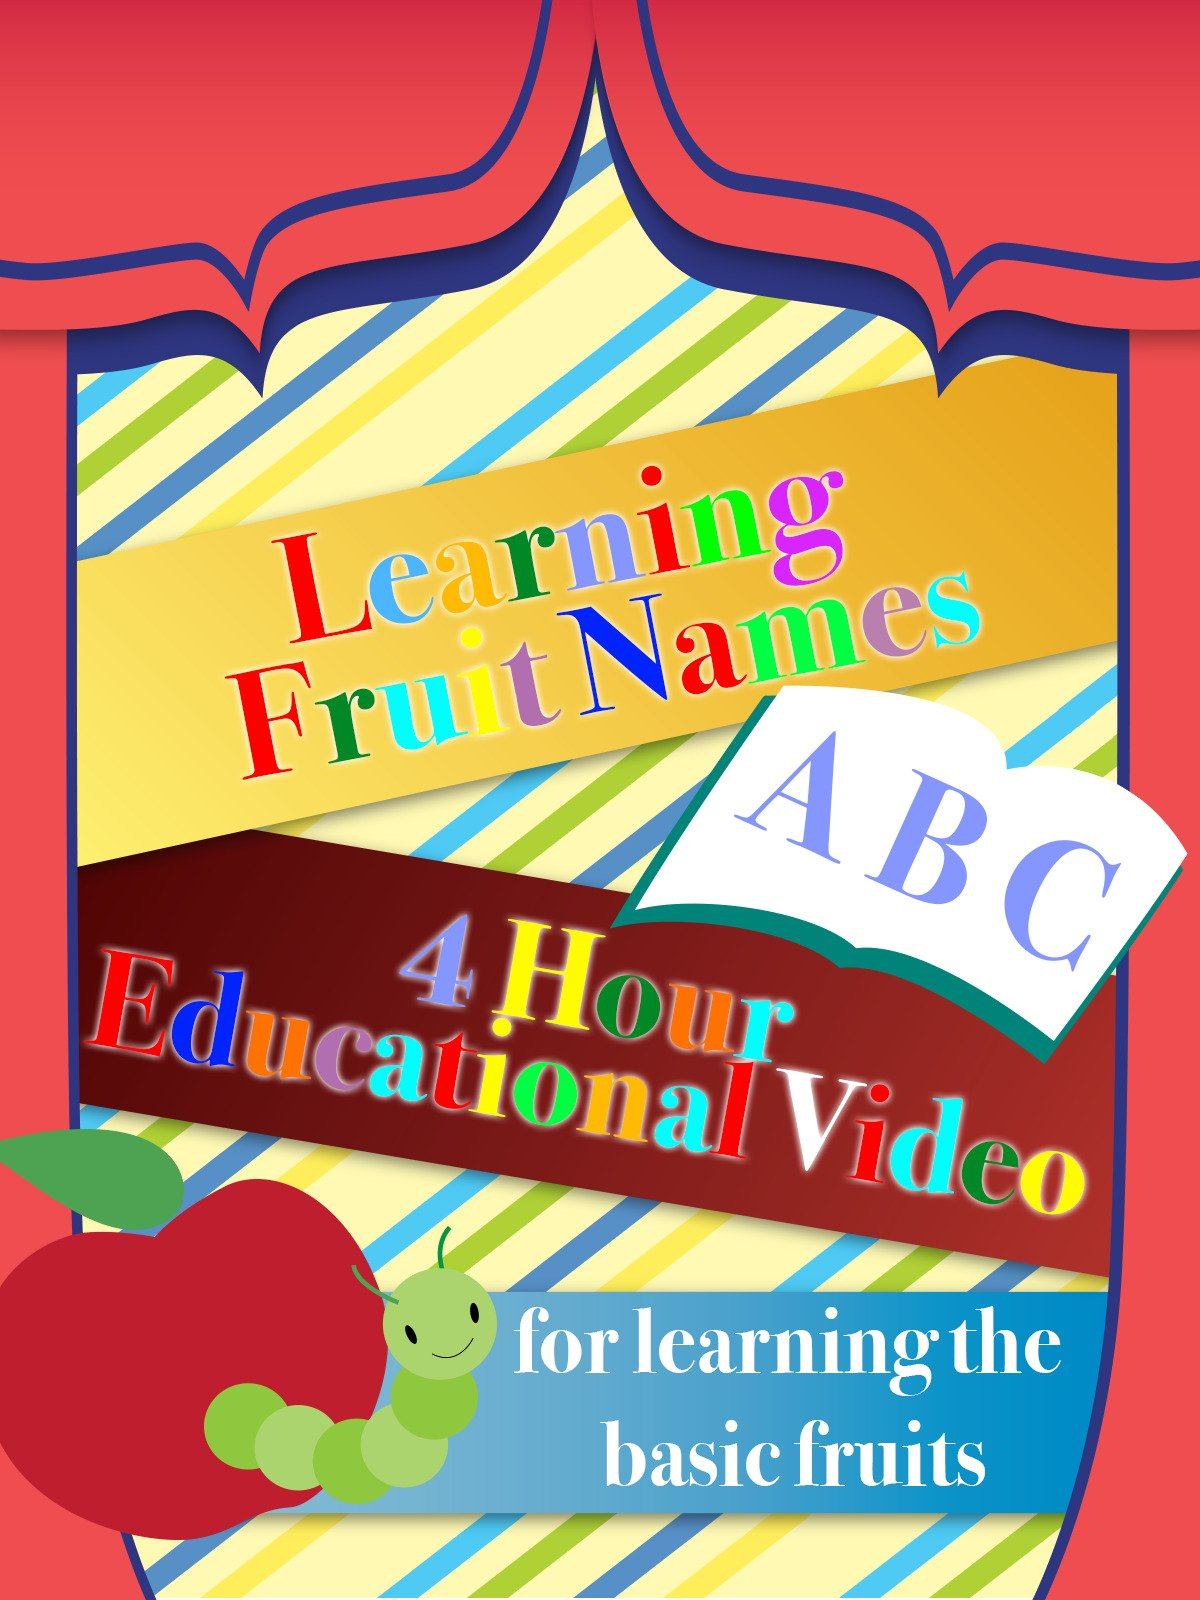 Learning Fruit Names 4 Hour Educational Video for learning the basic fruits